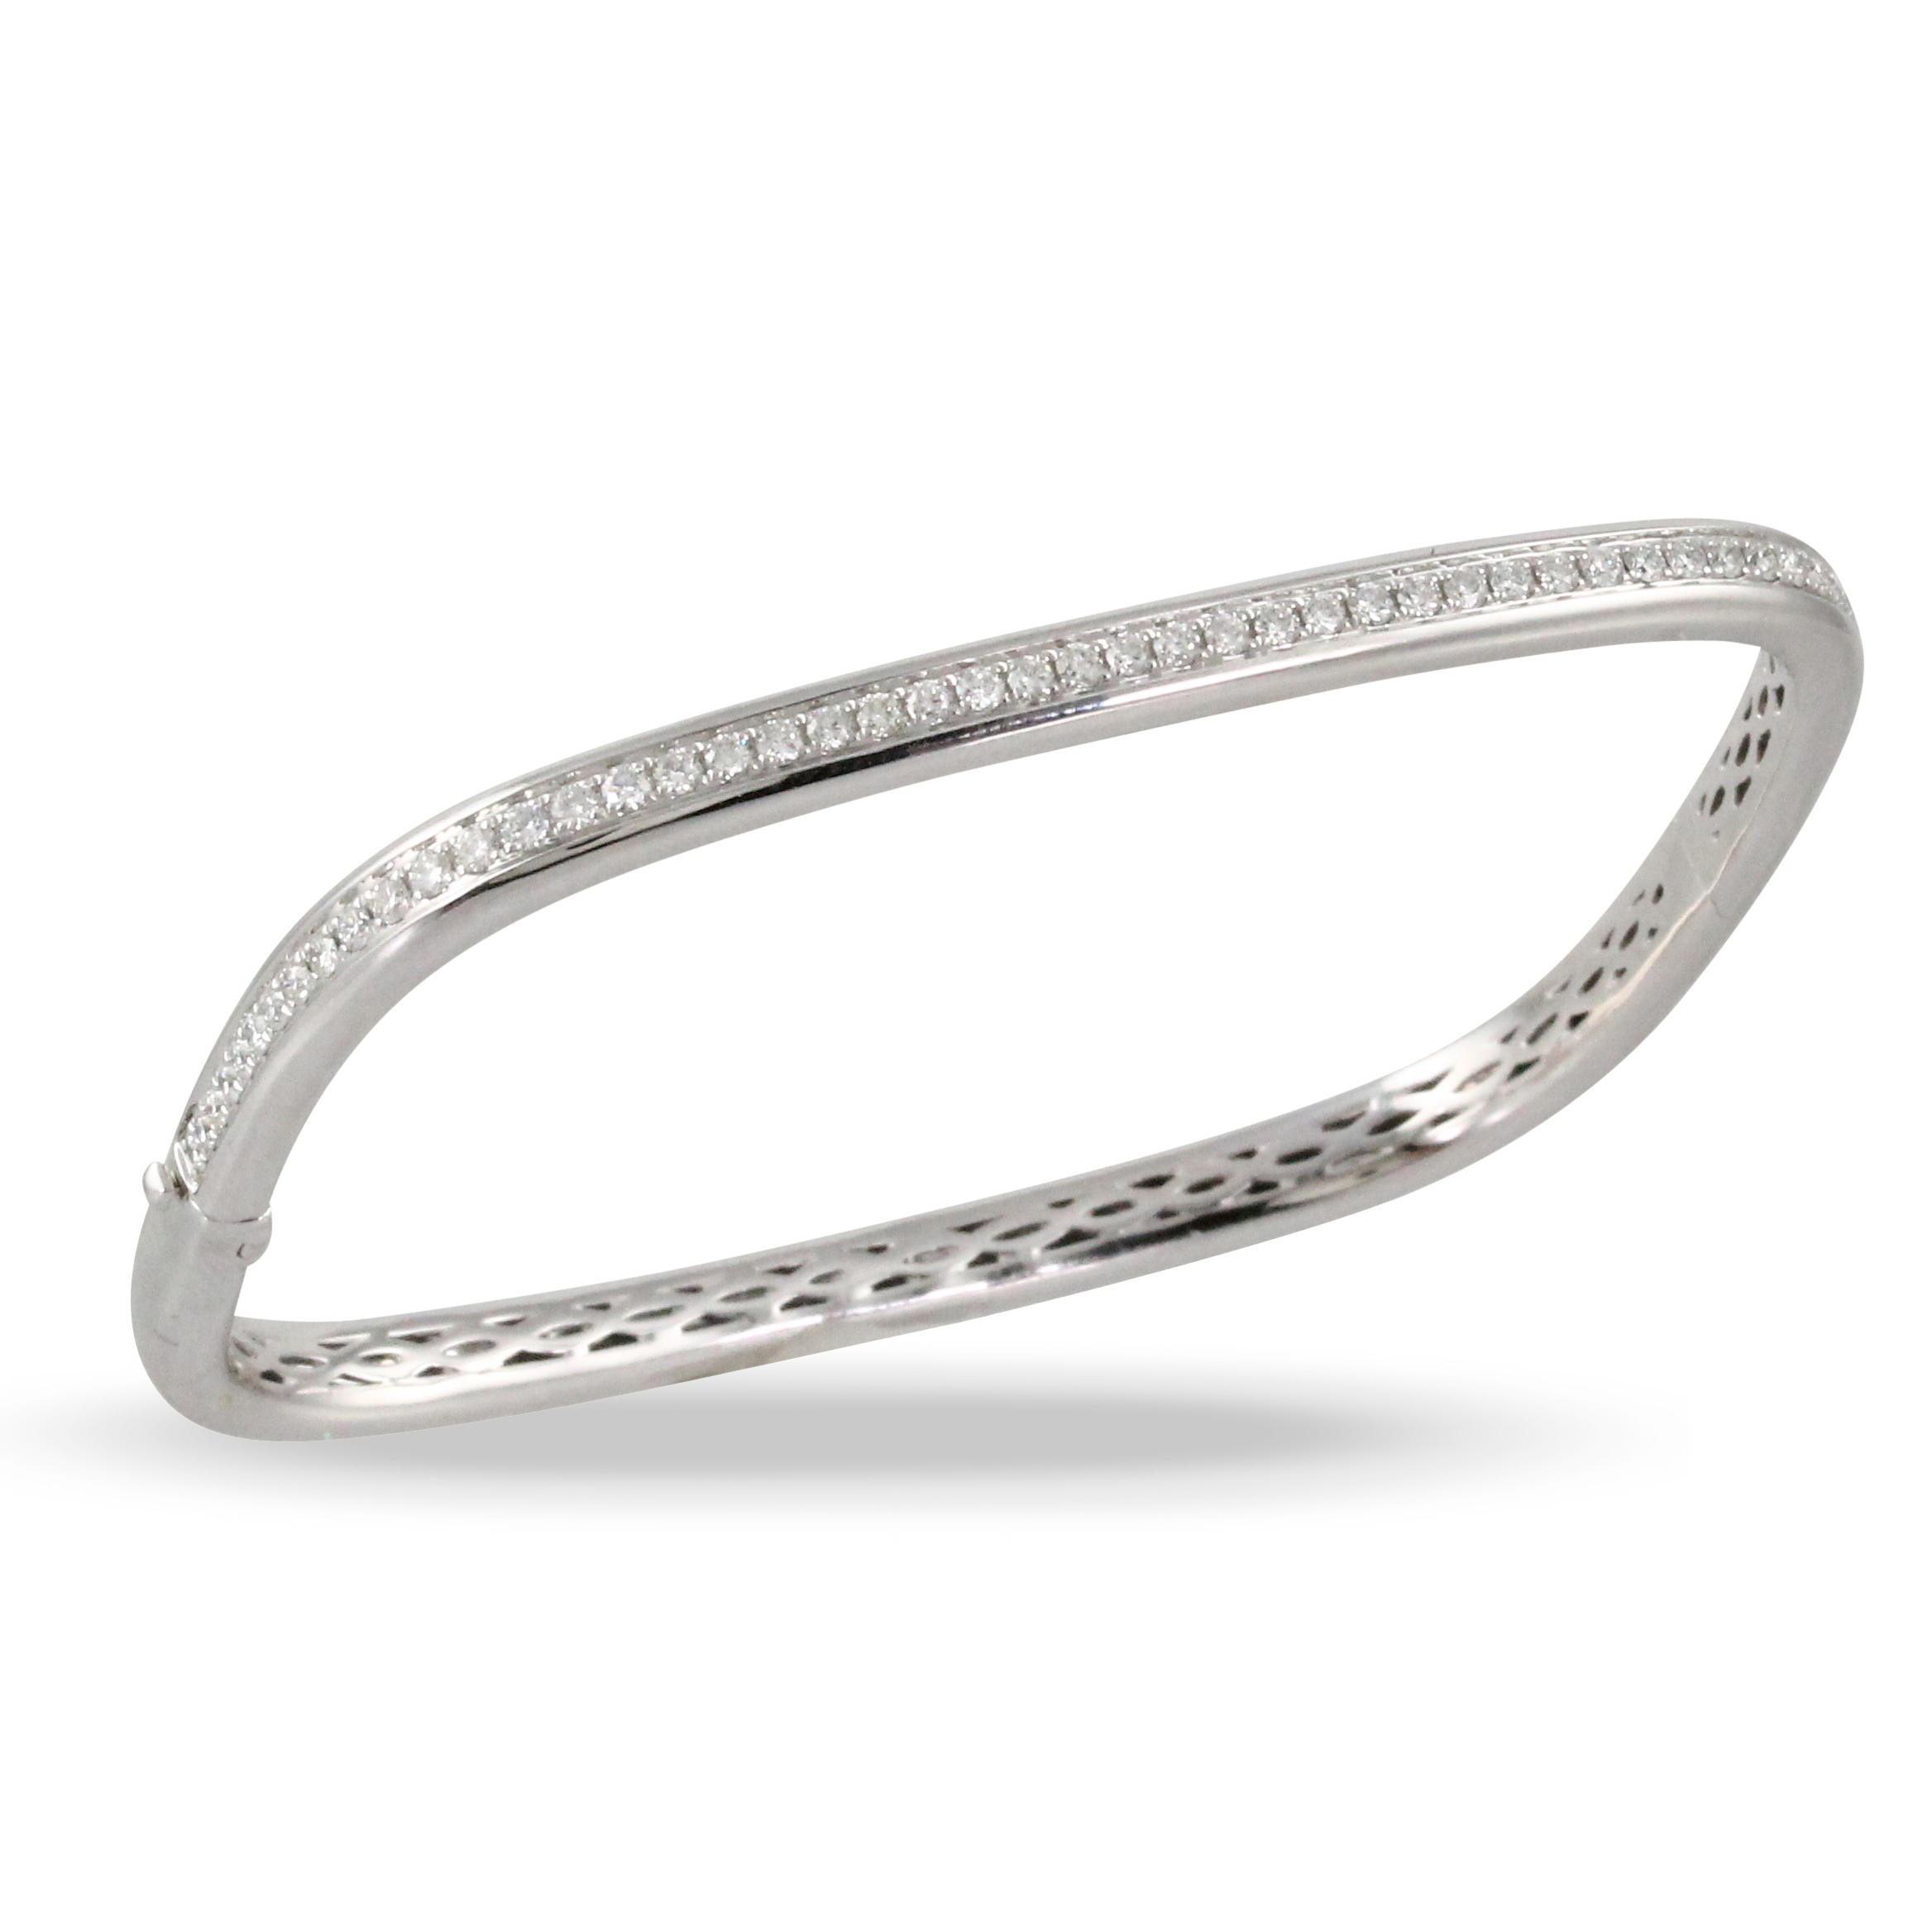 18K White Gold Diamond Bangle Bracelet - 18K White Gold Diamond Bangle